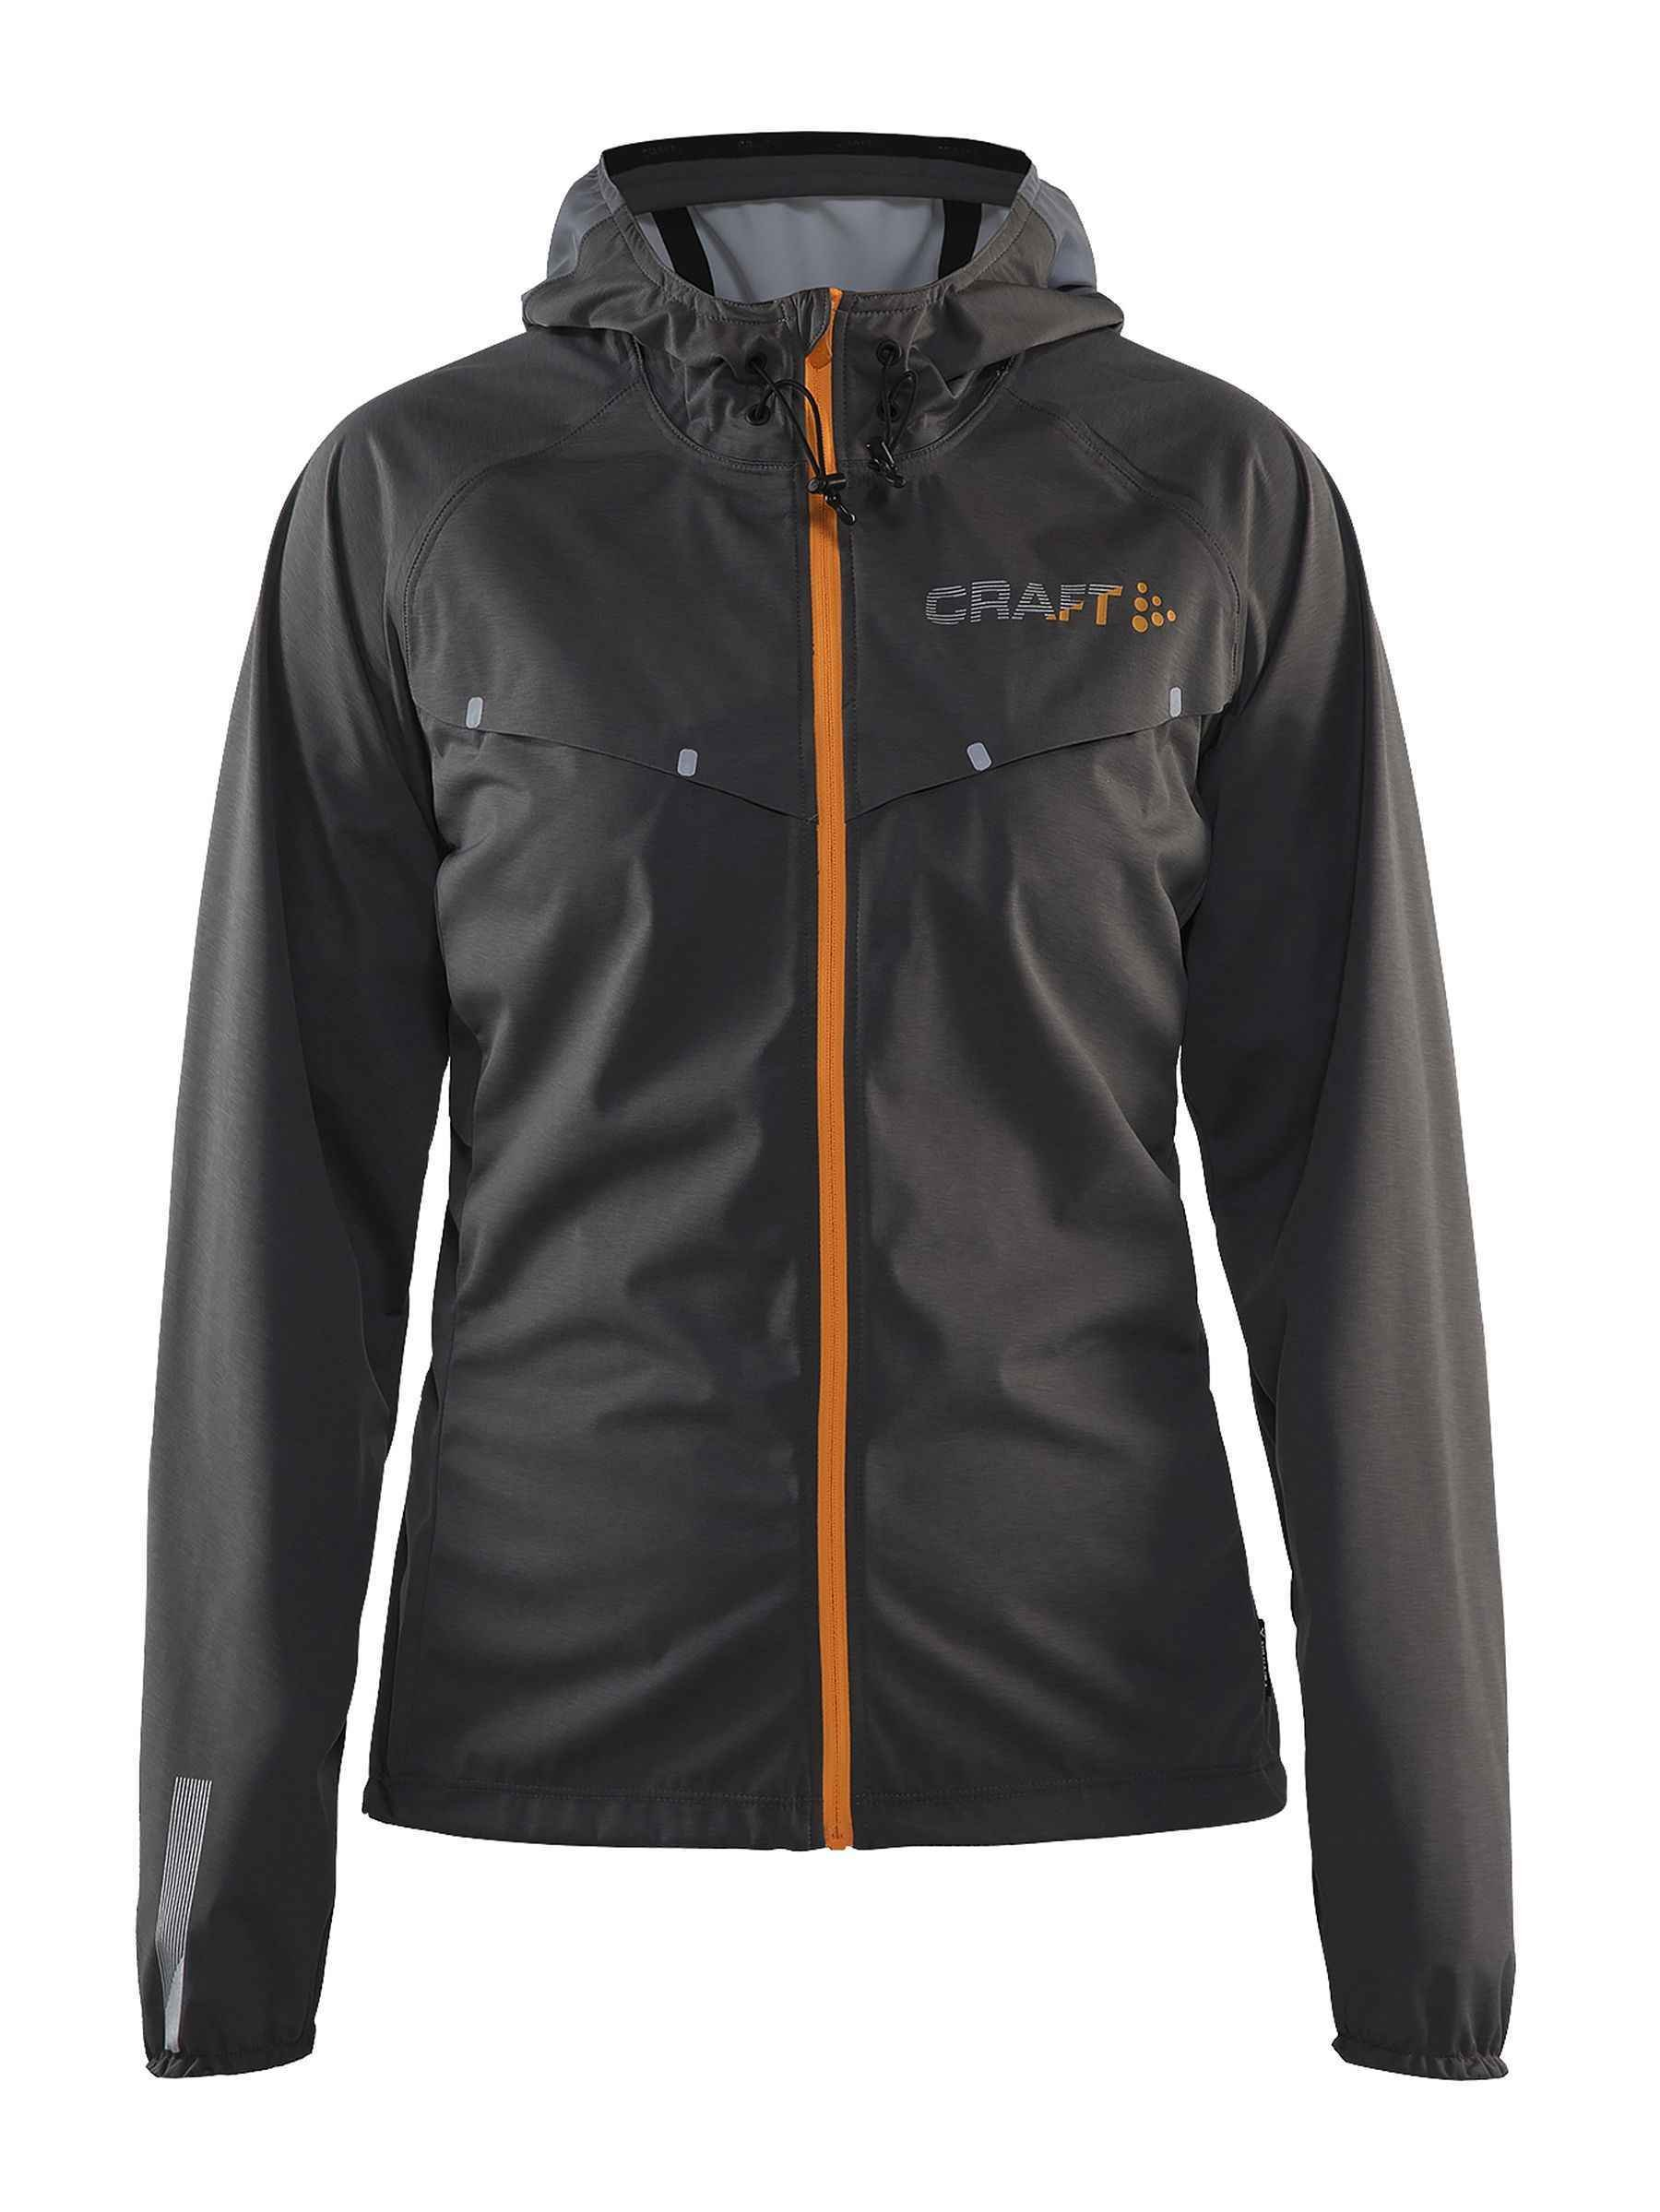 Craft Sportswear Womens Repel Running and Training Outdoor Sport Windproof and Waterproof Reflective Fitted Hooded Jacket